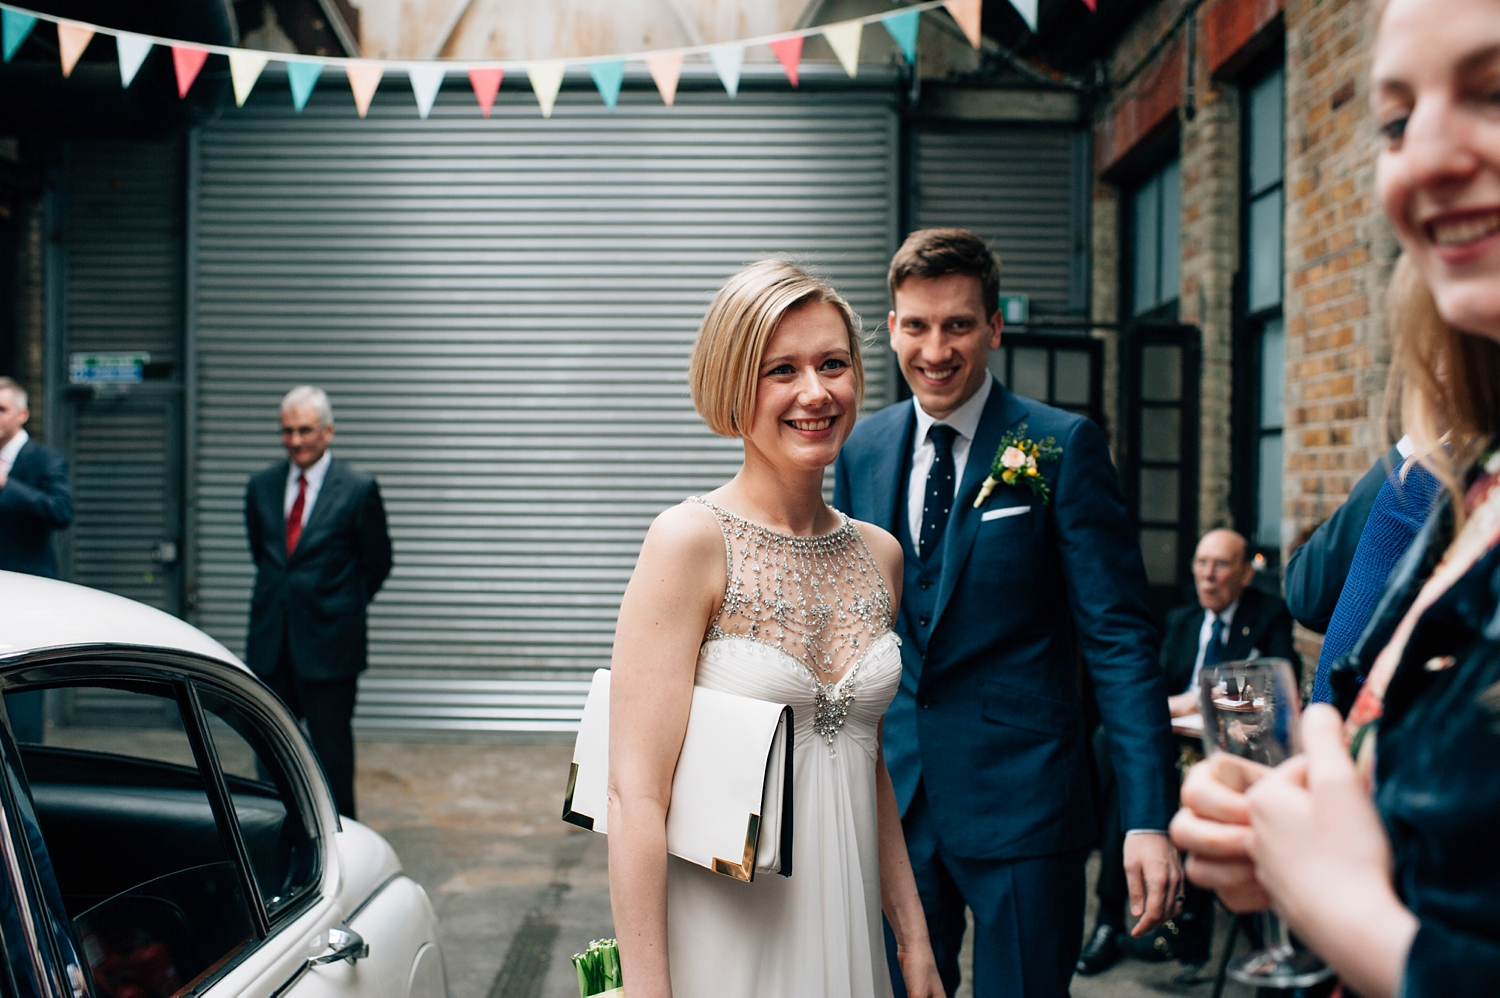 0106-lisa-devine-alternative-wedding-photography-london-hackney-dalston-london-photography-townhall-hotel.JPG